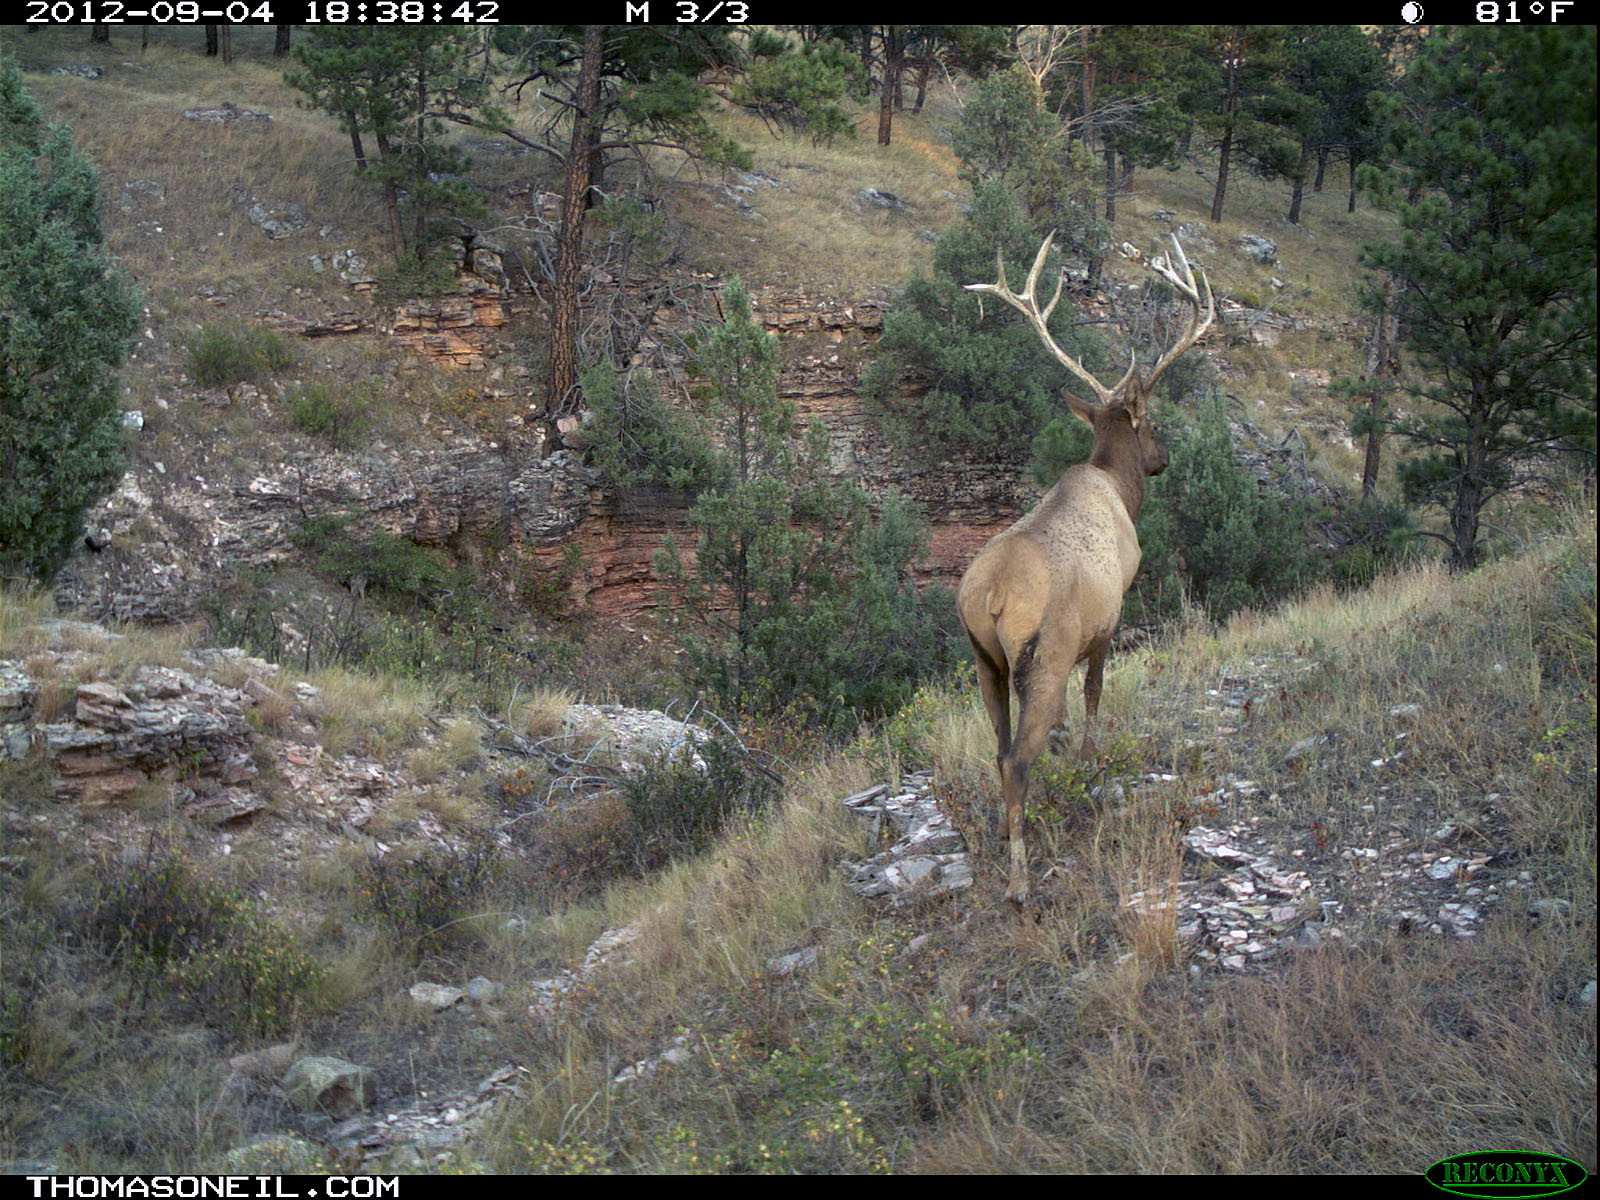 Trailcam picture of elk, Wind Cave National Park, September 4.